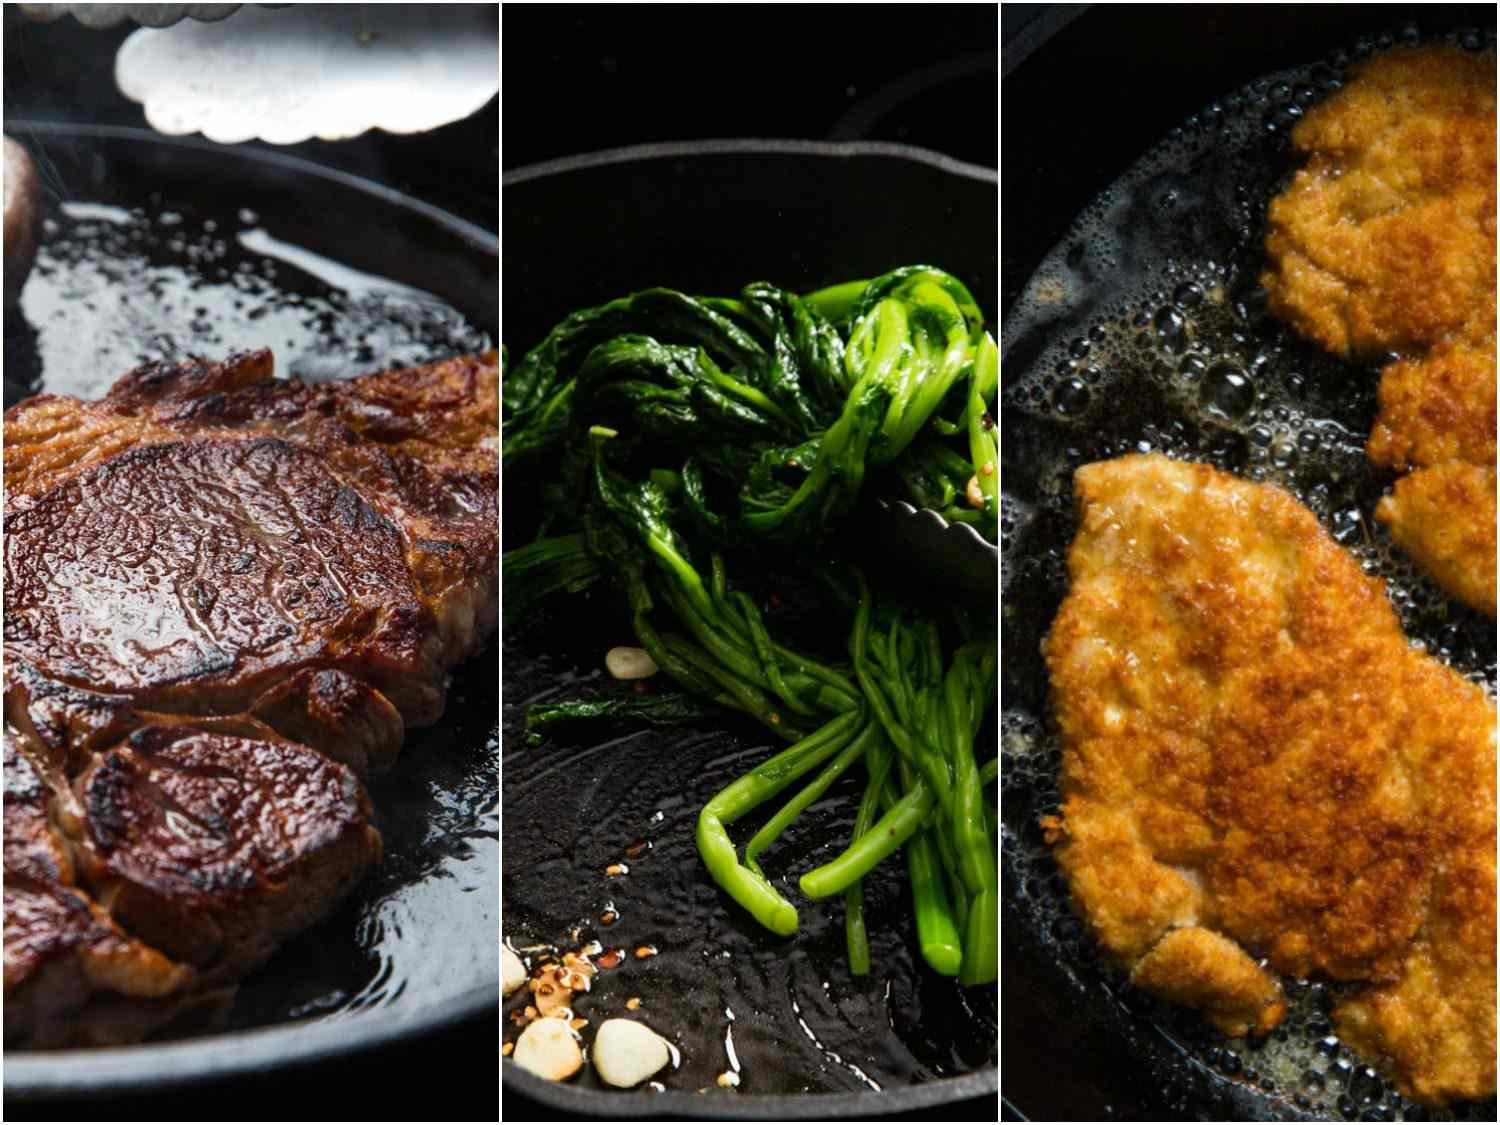 Collage showing three dishes cooking in cast iron skillet.